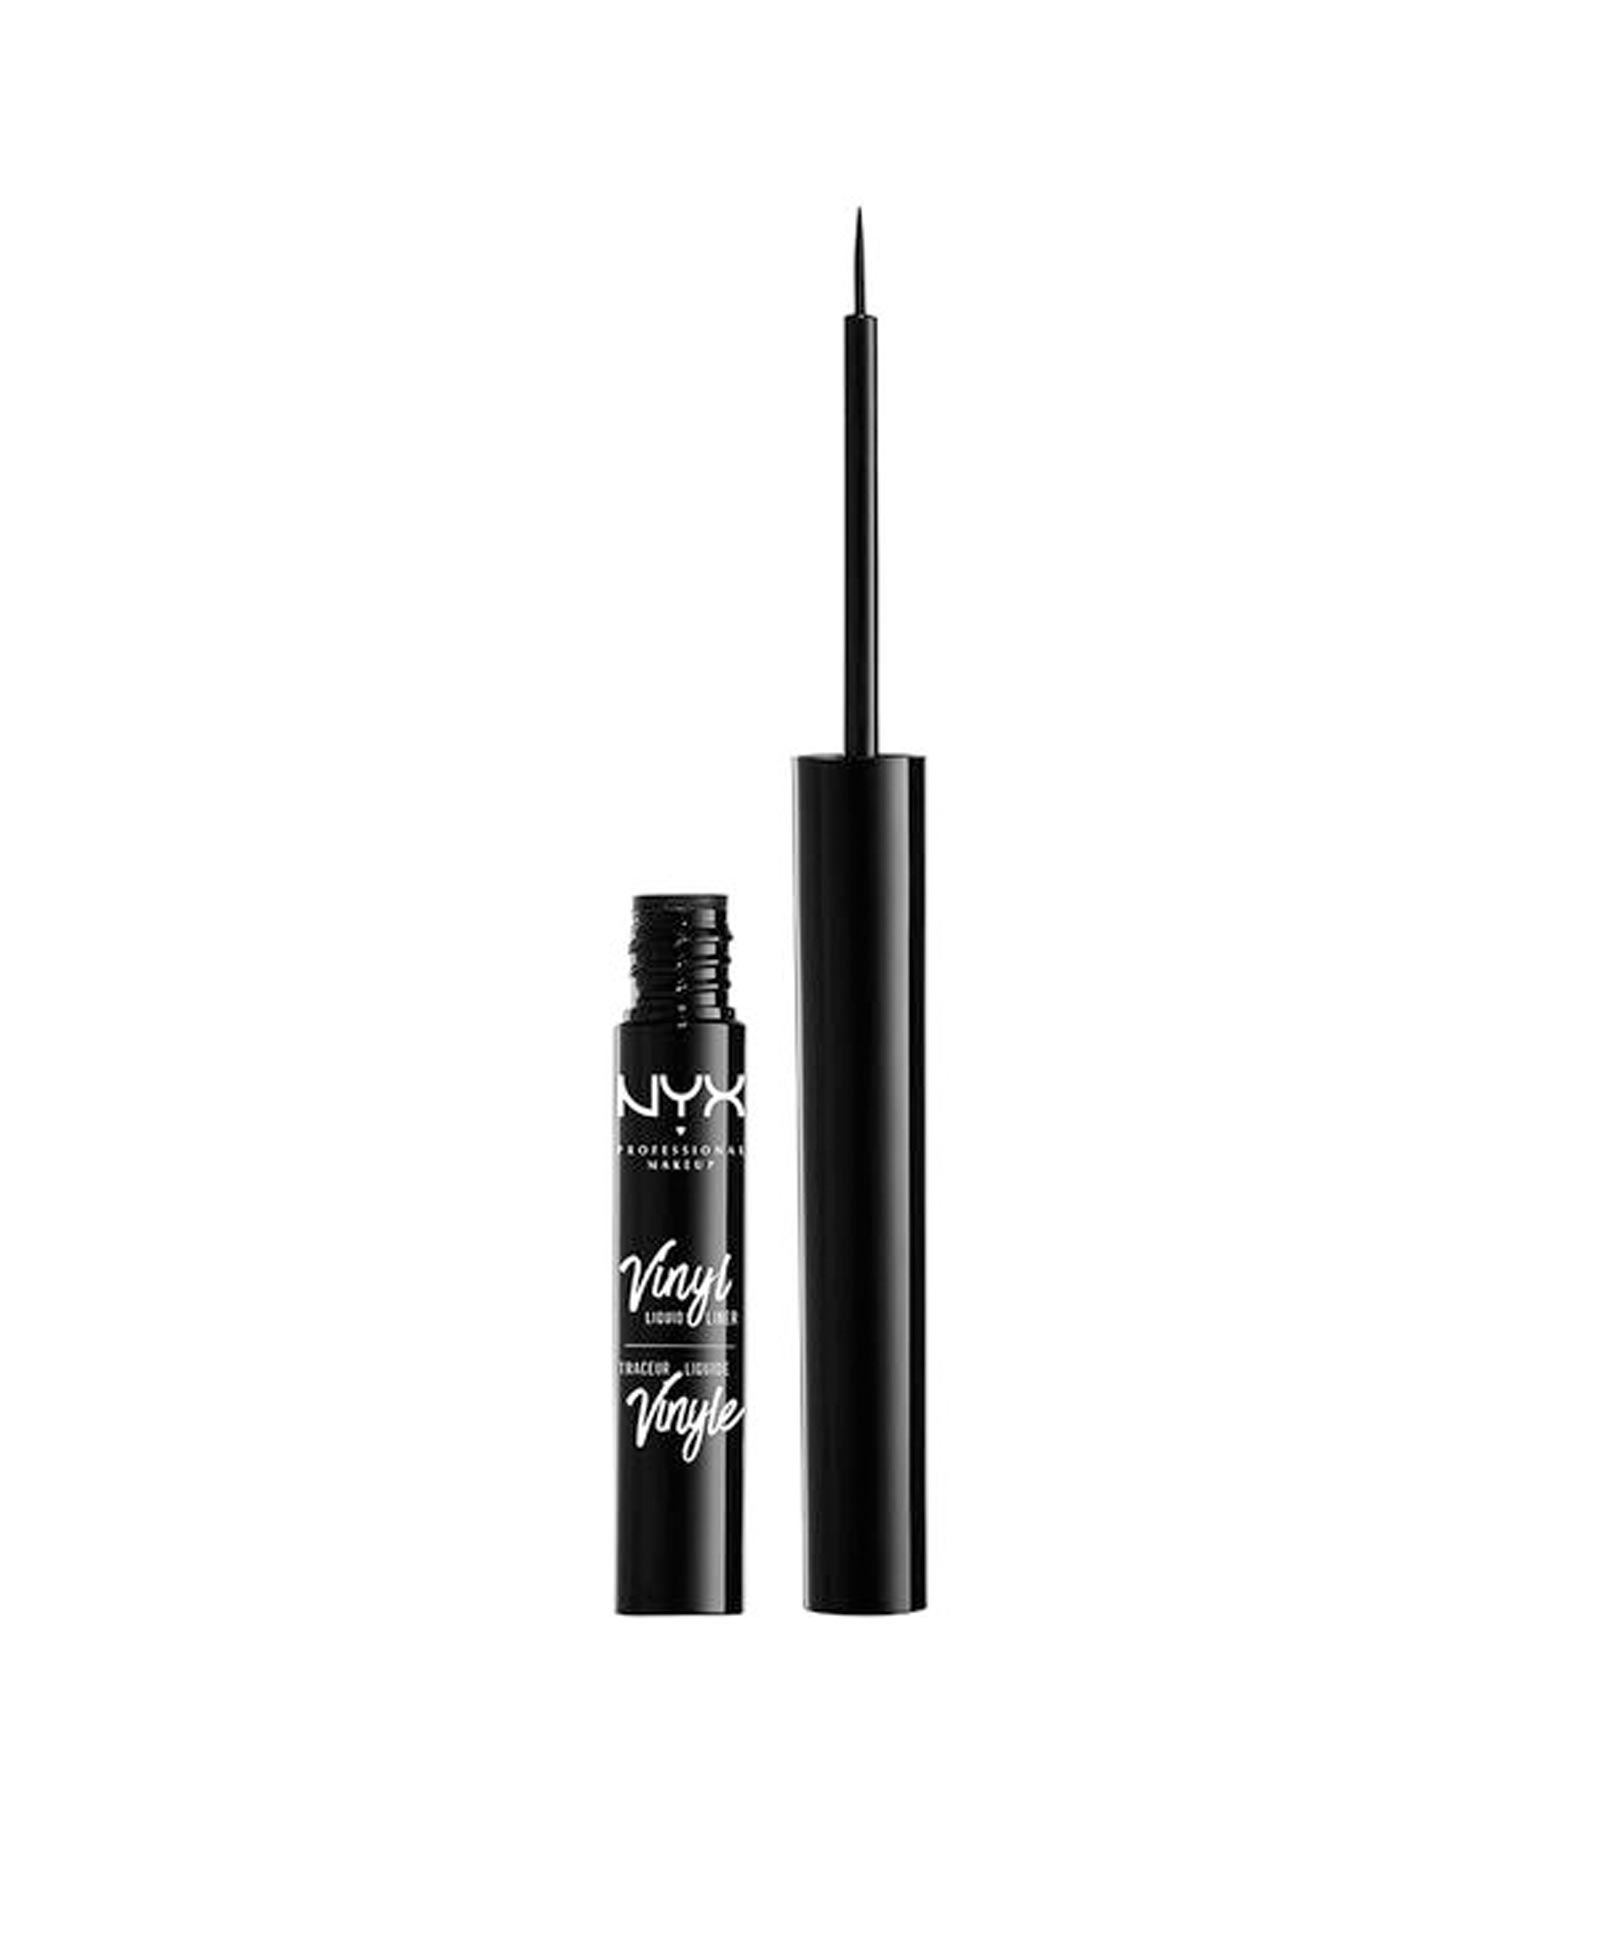 """<a href=""""/brand/nyx/""""><strong>NYX PROFESSIONAL MAKEUP</strong> </a><br />Vinyl Liquid Liner Image"""